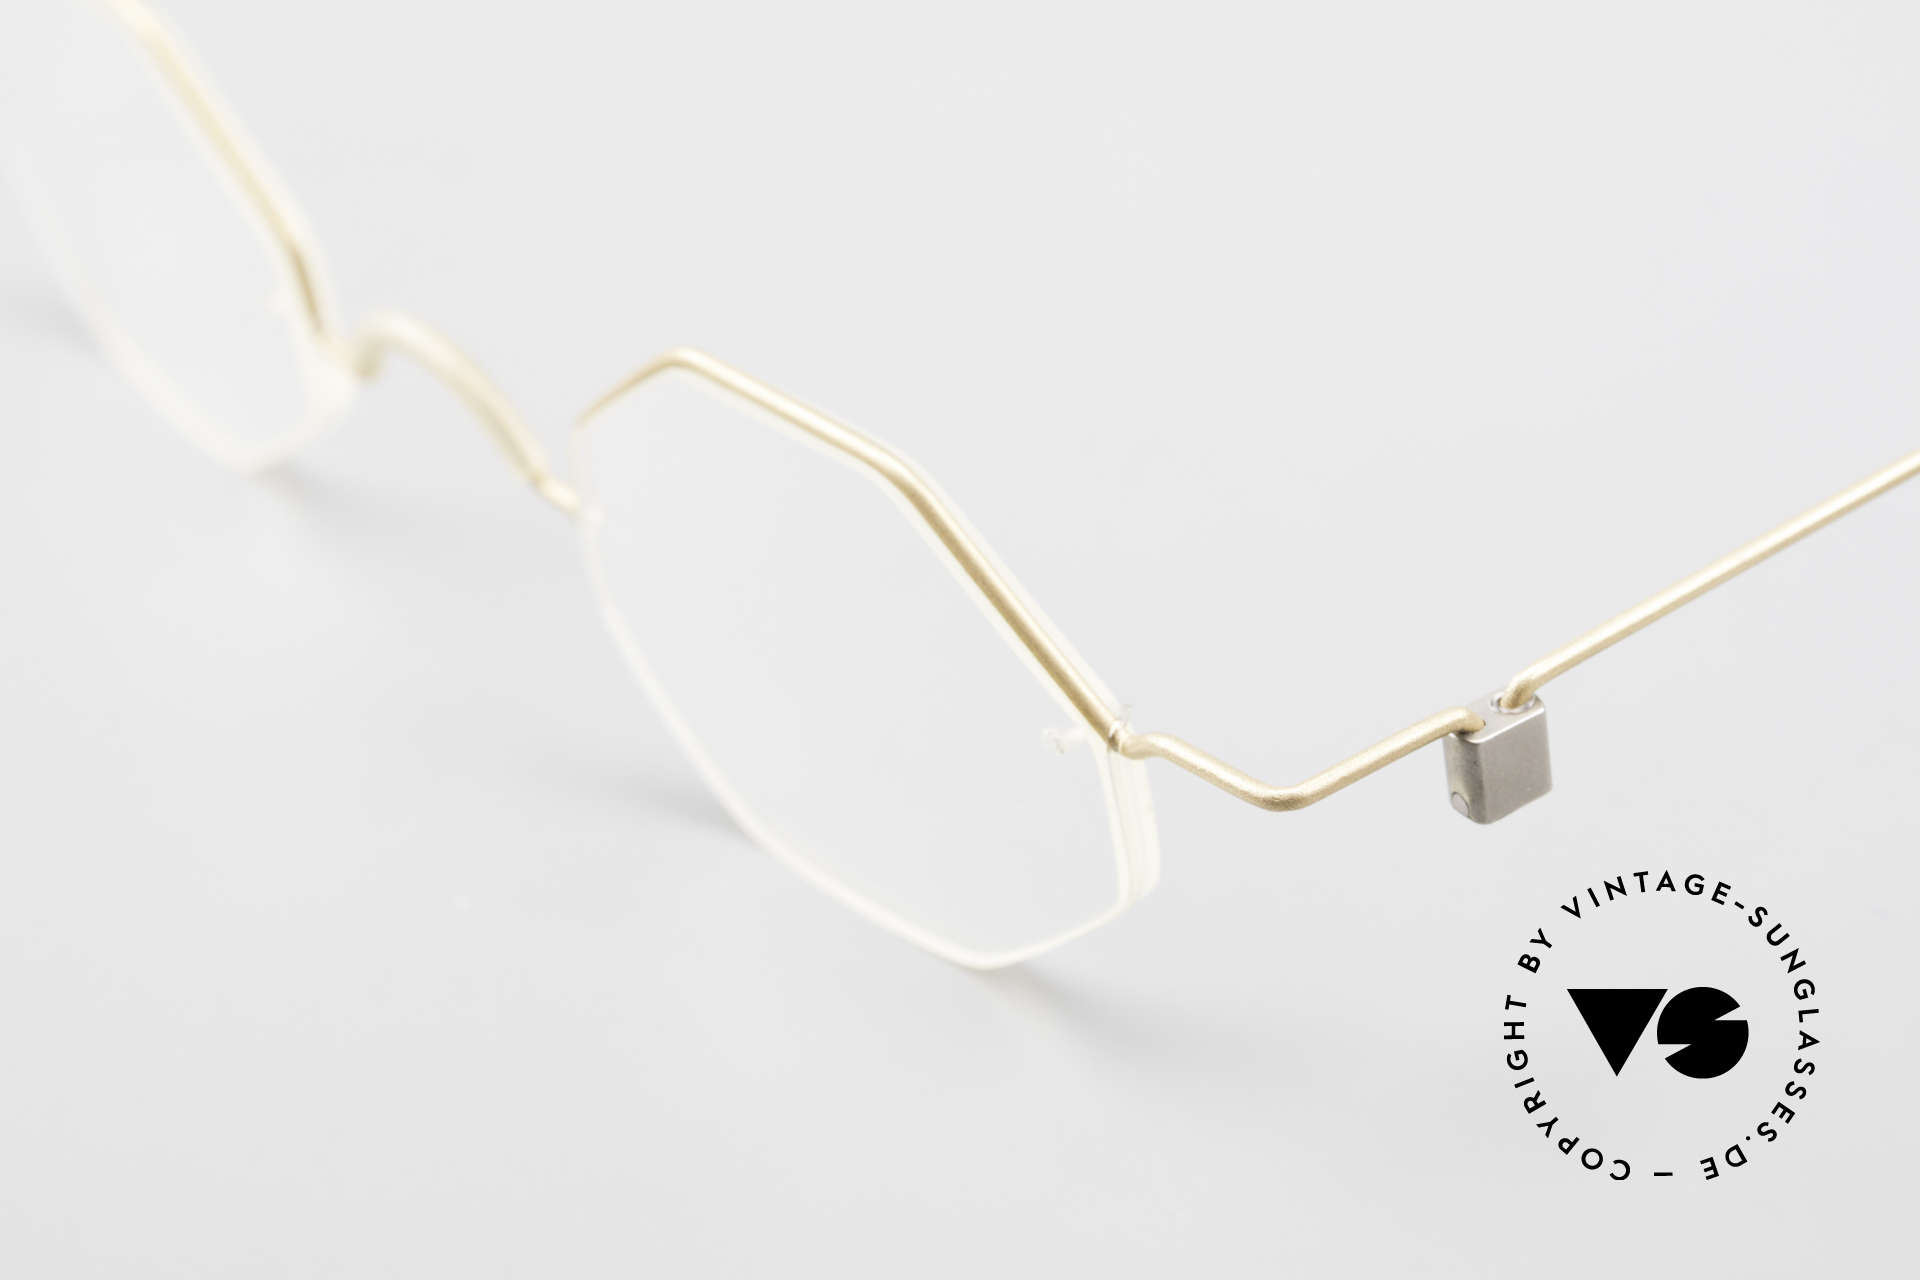 Markus T Octagonal Connoisseur Frame, anyway, an approx. 20-25 years old UNWORN original, Made for Men and Women